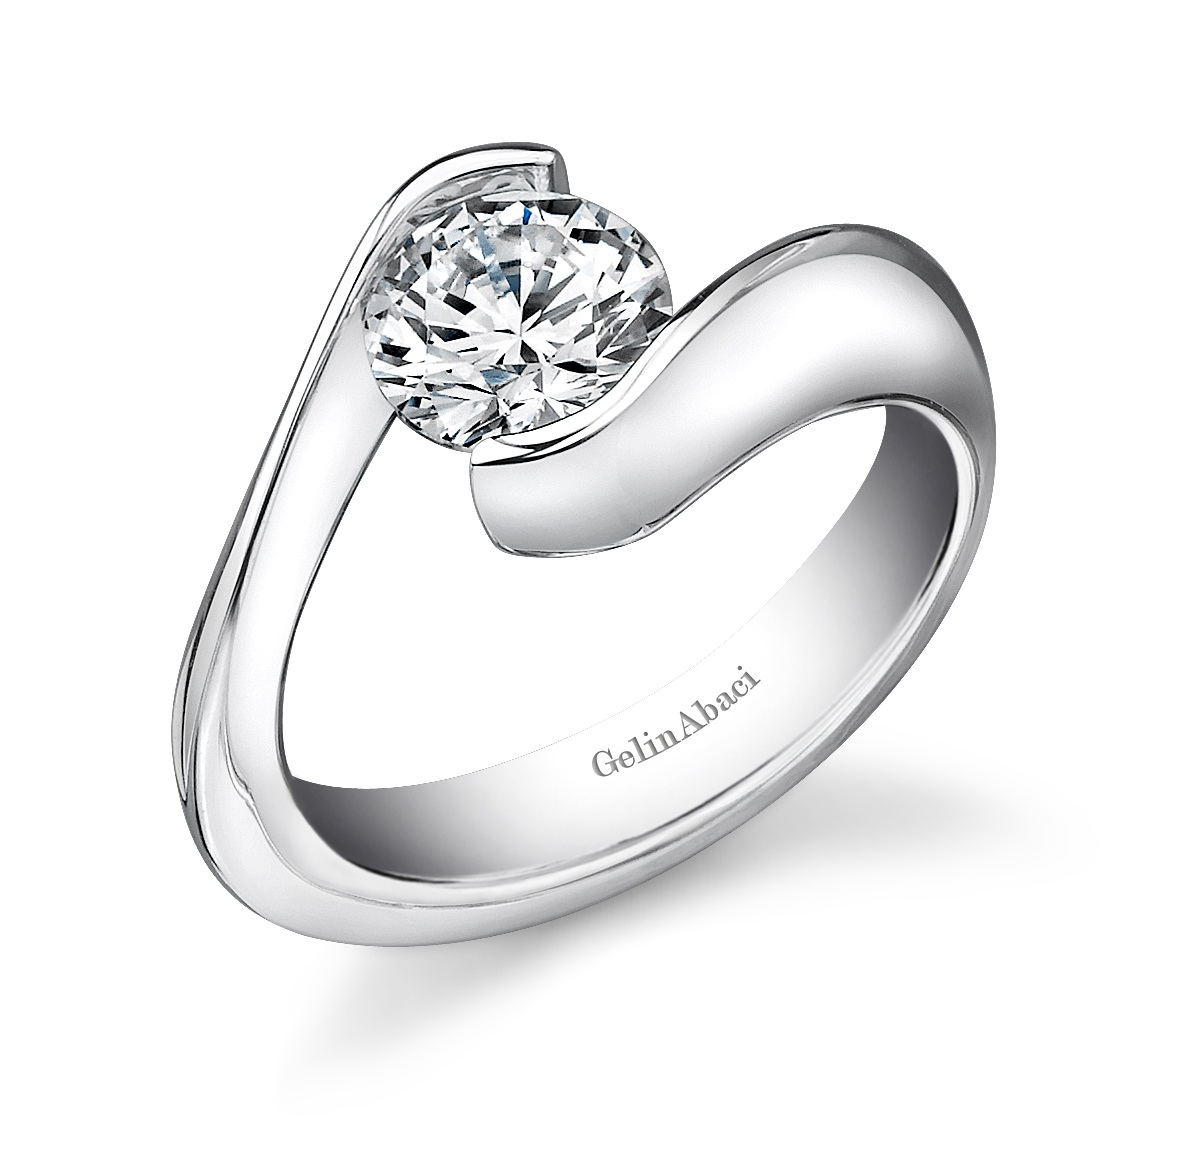 Gelin Abaci - $3,375 Platinum Engagement Ring